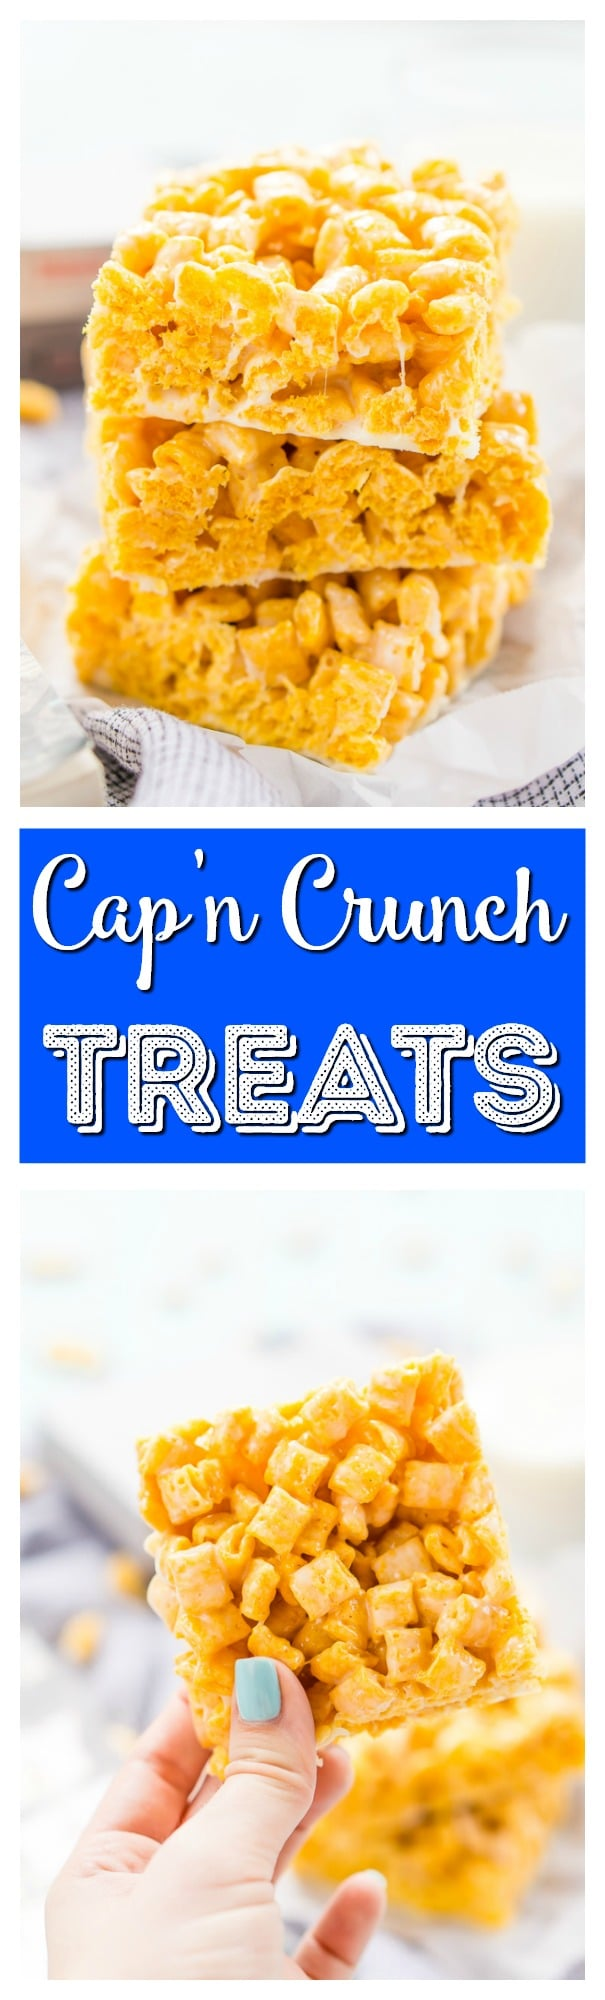 These Cap'n Crunch Treatsare a fun twist on classic rice krispies treats and inspired by the book Ready Player One by Ernest Cline. They're the perfect fast dessert or afternoon snack and Cap'n Crunch lovers will go crazy over them! via @sugarandsoulco